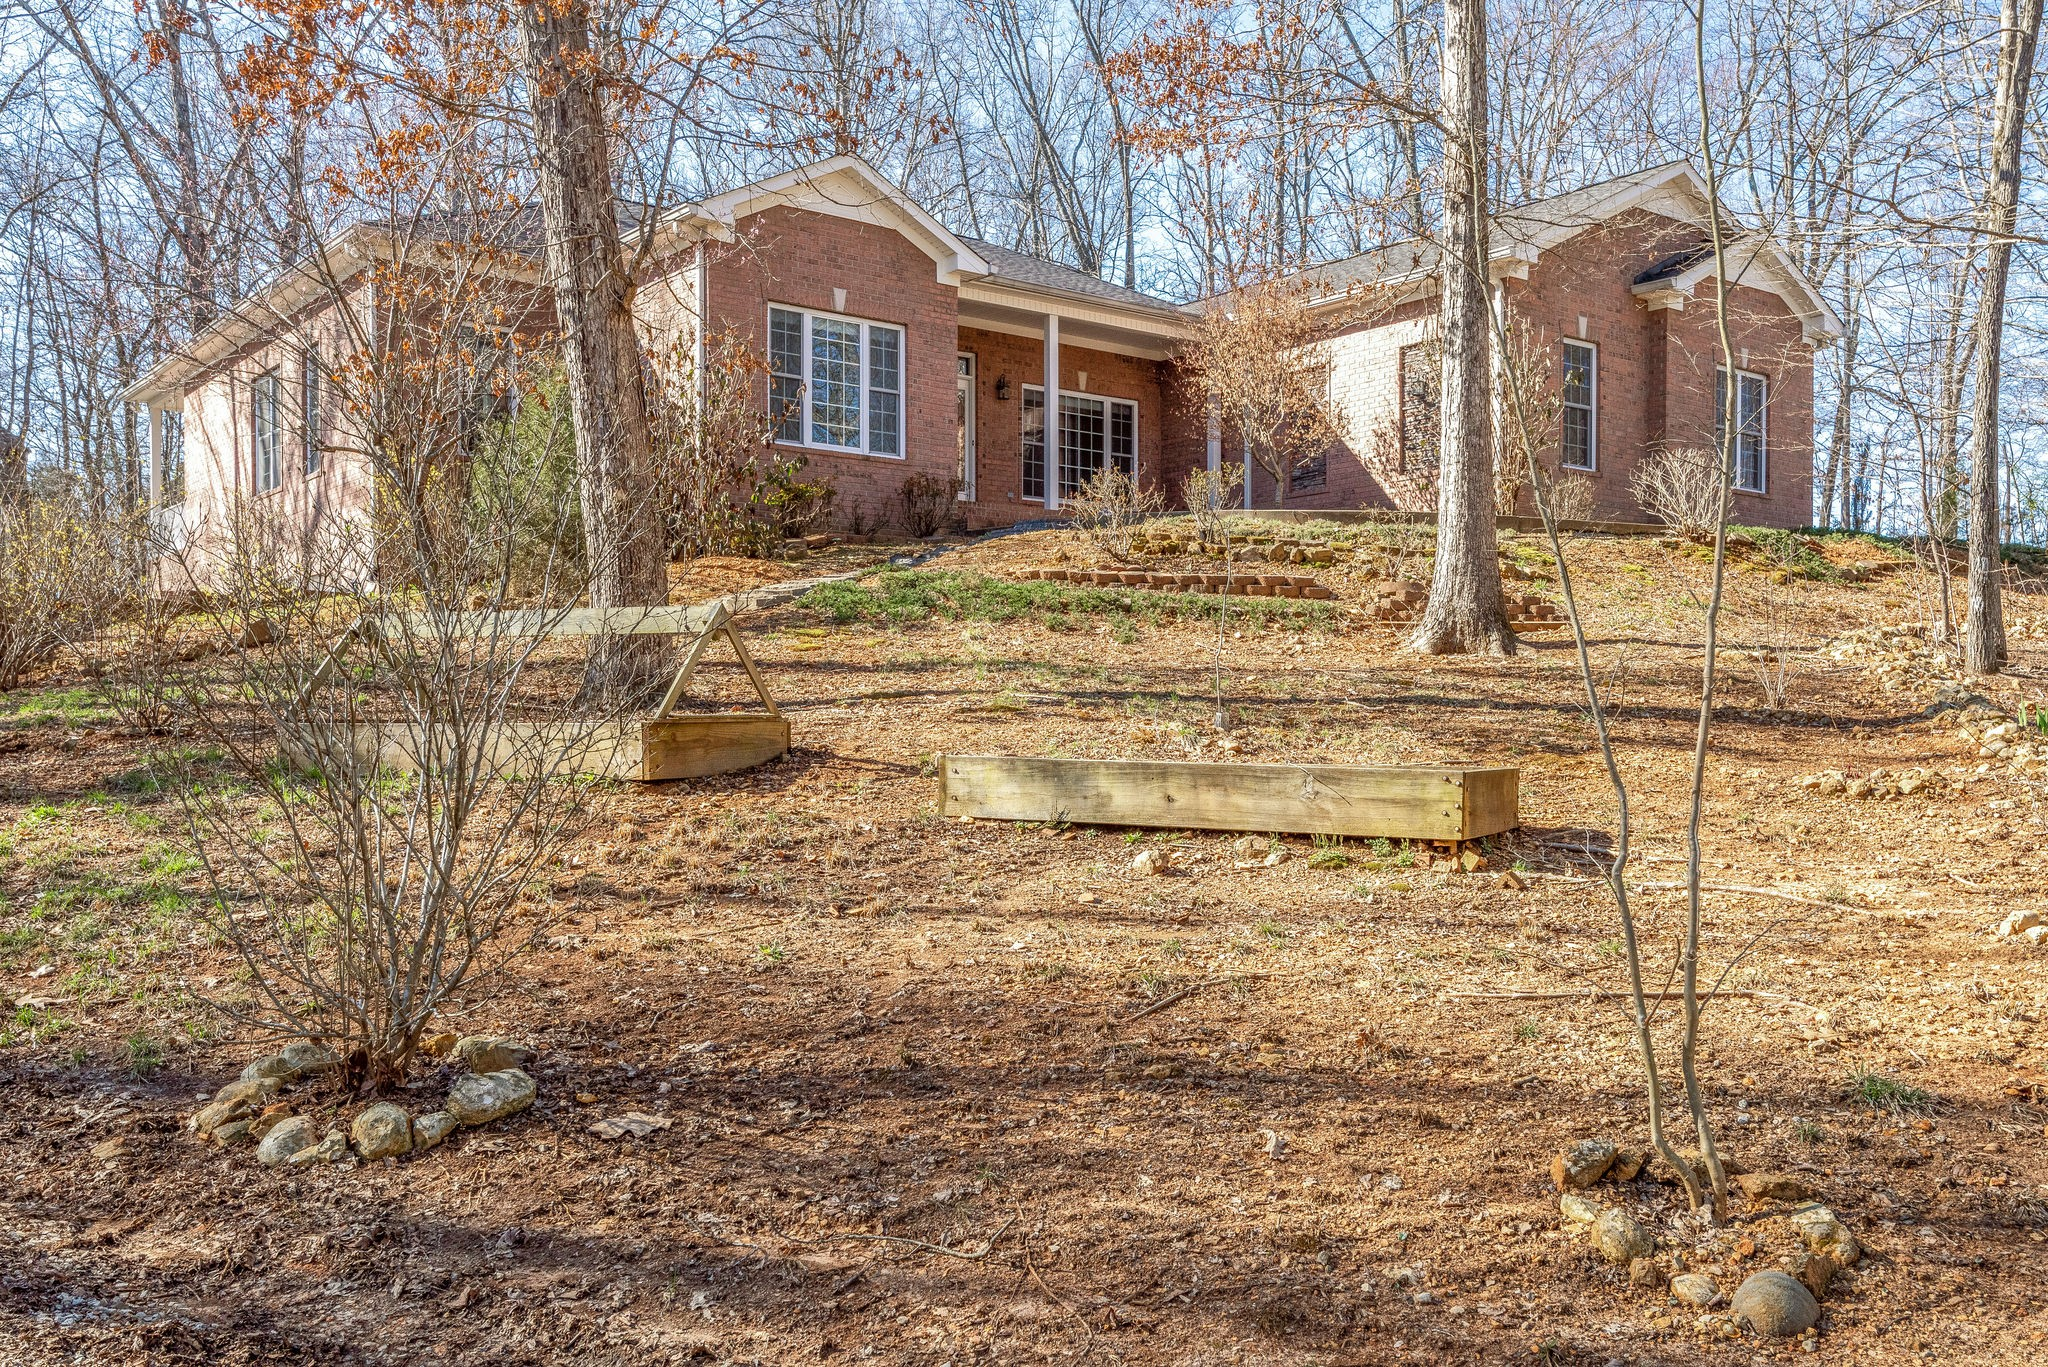 1457 Rock Church Rd, Dickson, TN 37055 - Dickson, TN real estate listing